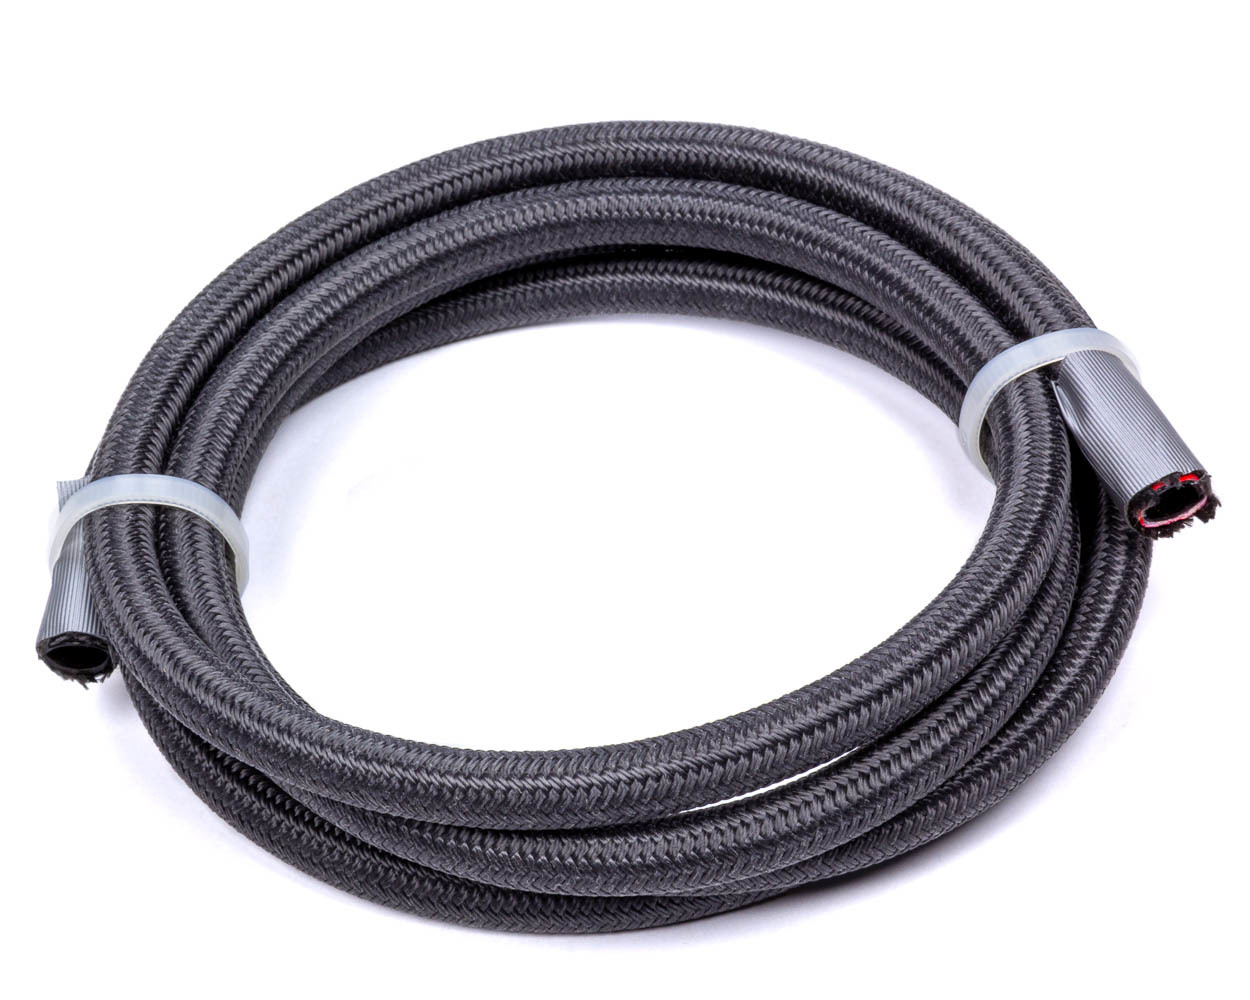 Fragola 2701504 Hose, Race-Rite, 4 AN, 15 ft, Braided Fire Retardant Fabric, PTFE, Black, Each